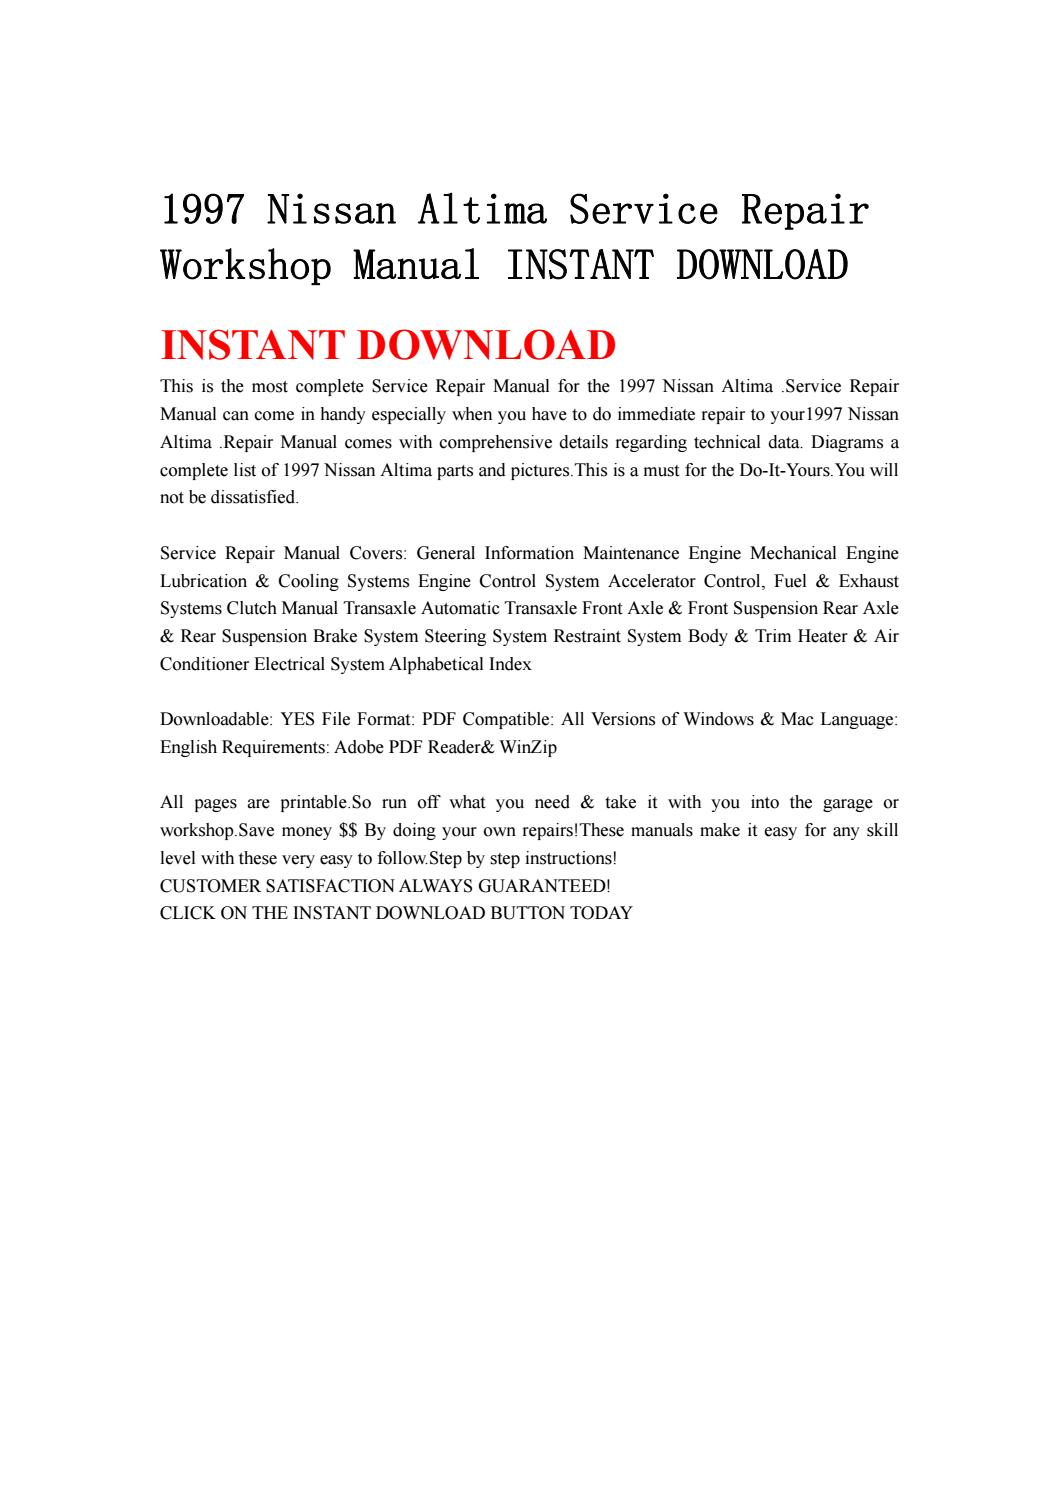 1997 nissan altima service repair workshop manual instant download by  jhsenfuh - issuu